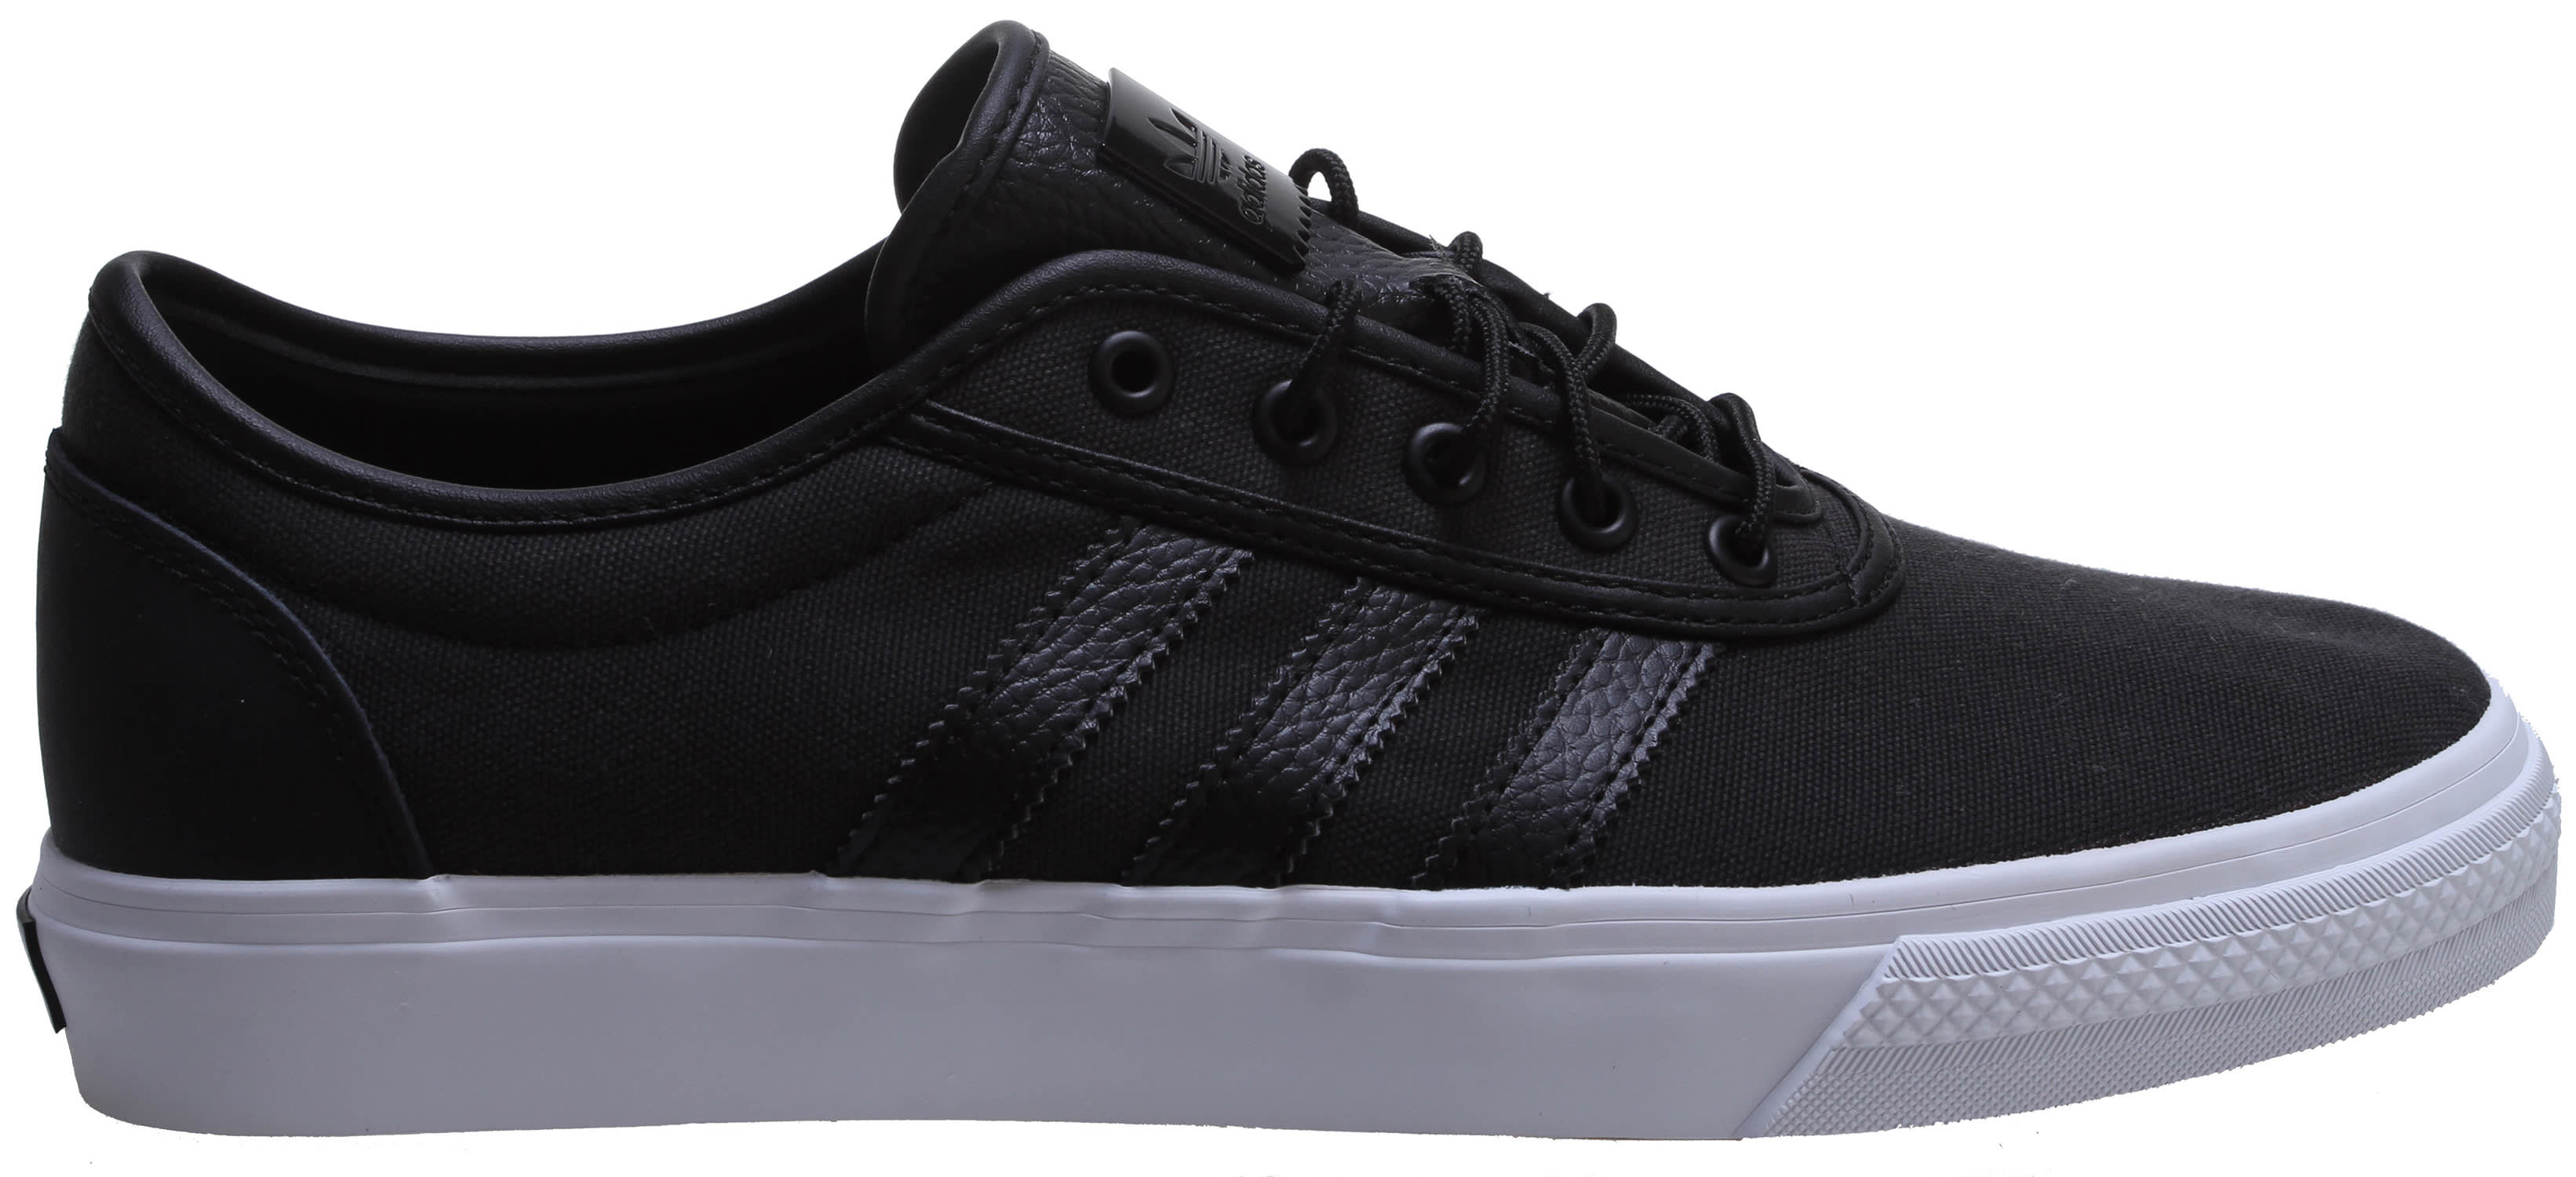 cheap for discount 00967 34431 Adidas Adi-Ease Classified Skate Shoes - thumbnail 1